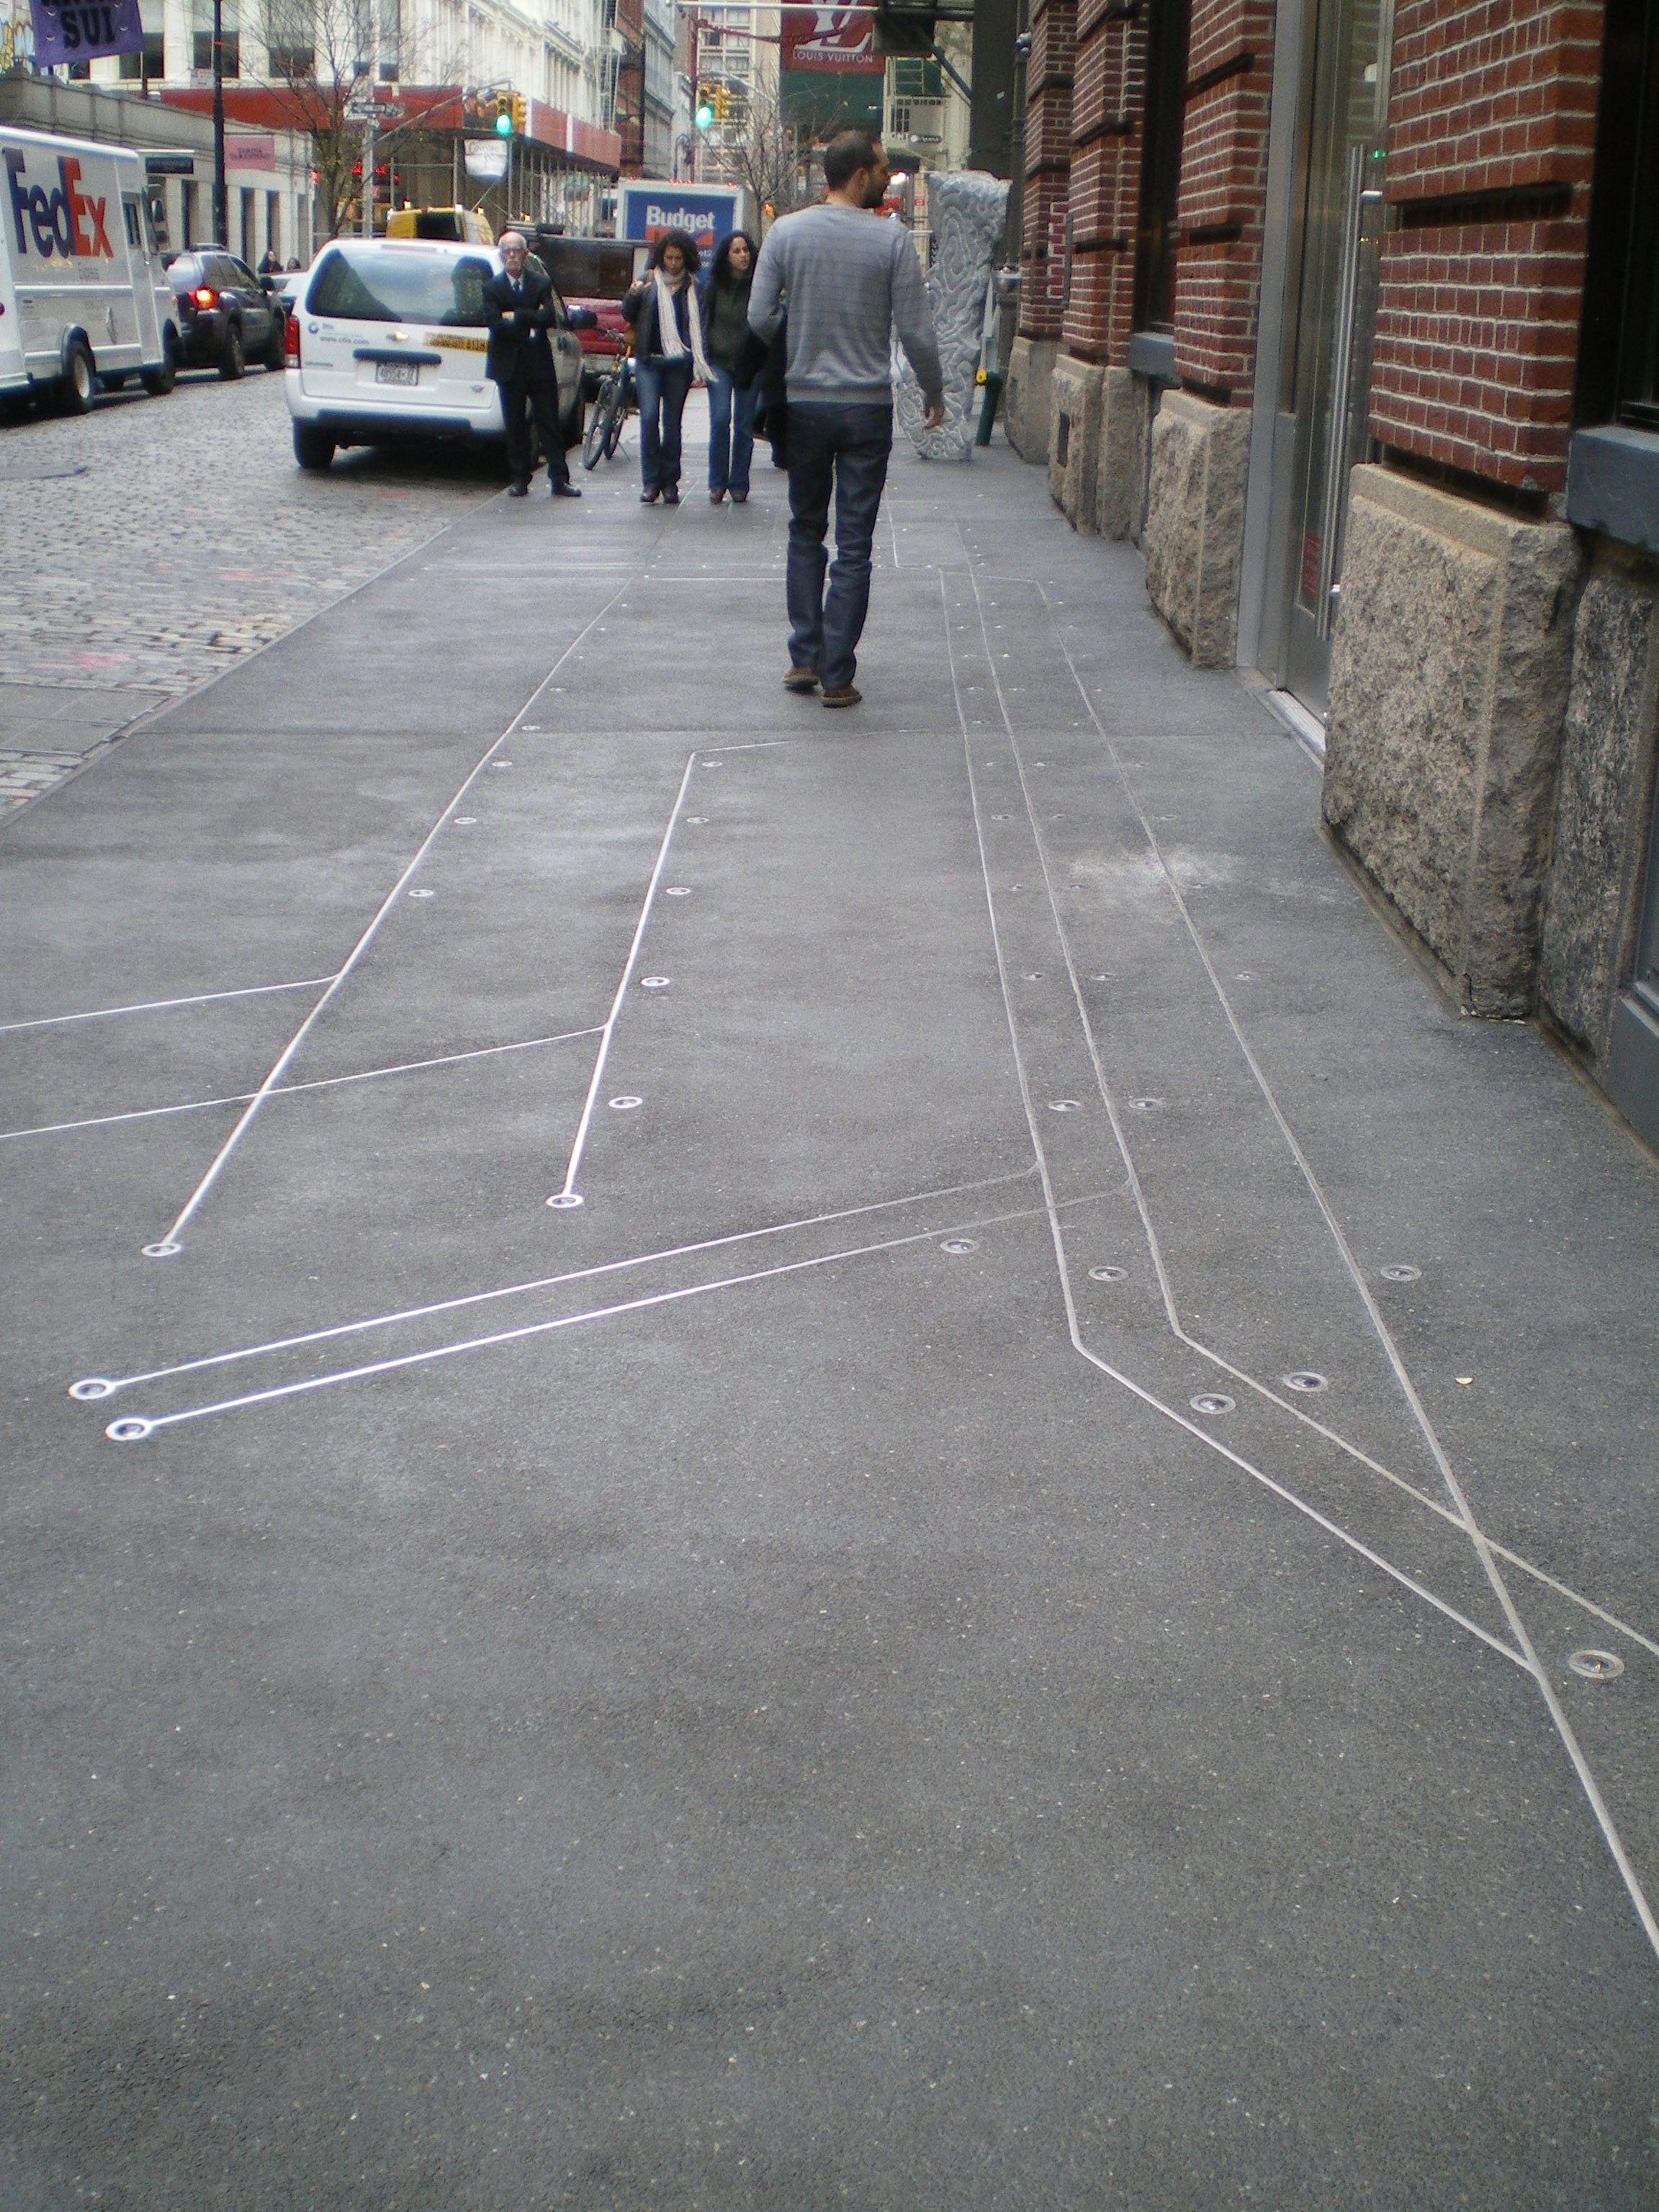 Subway Map Floating On A Ny Sidewalk New York Ny.Subway Map Floating On A Nyc Sidewalk 2009 110 Greene St In